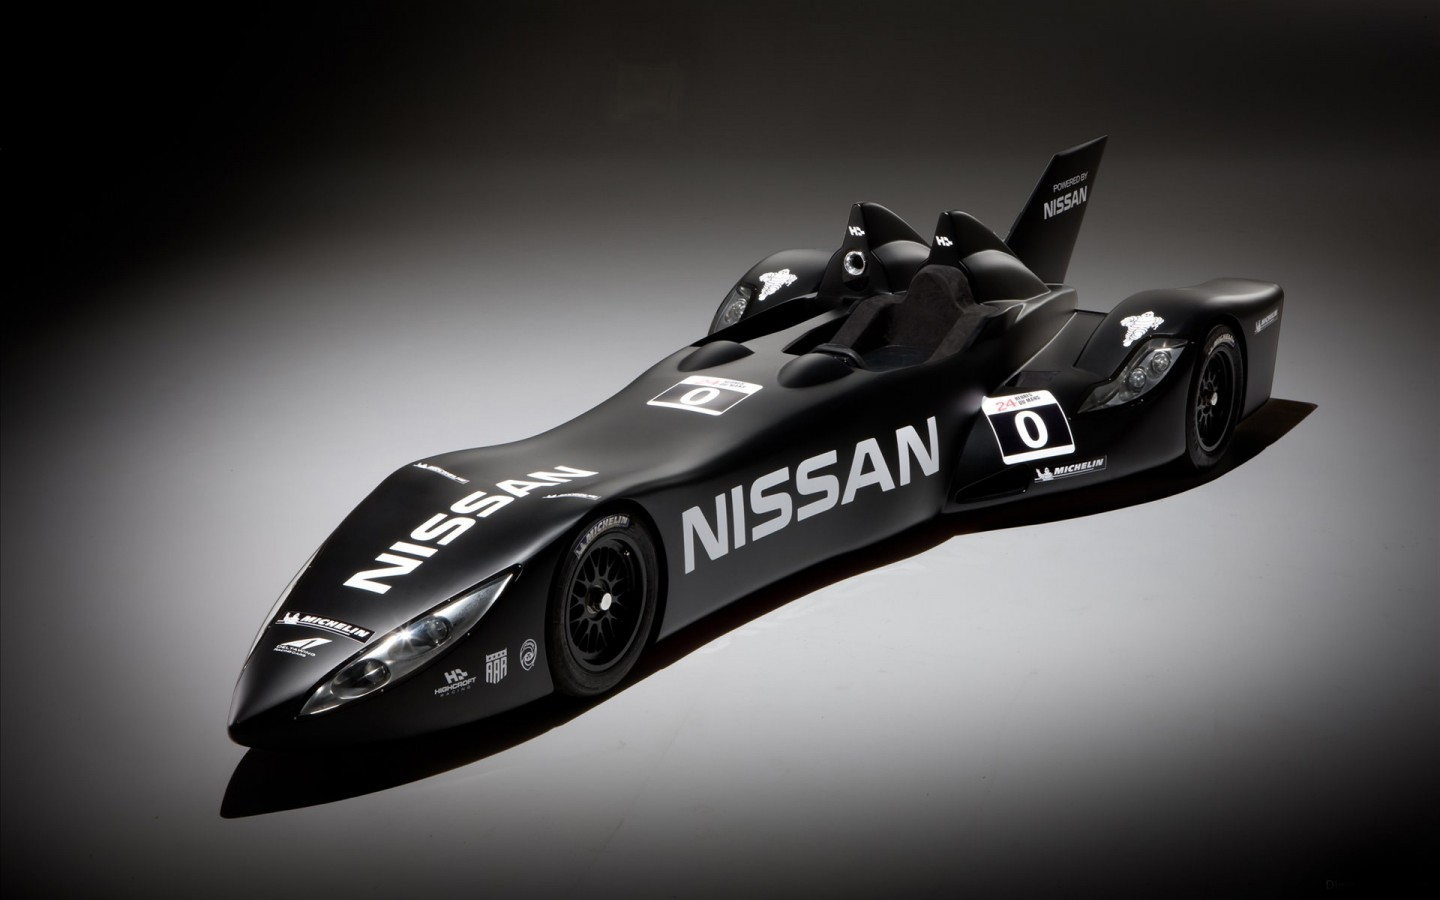 2012 Nissan DeltaWing Wallpaper in 1440x900 Resolution